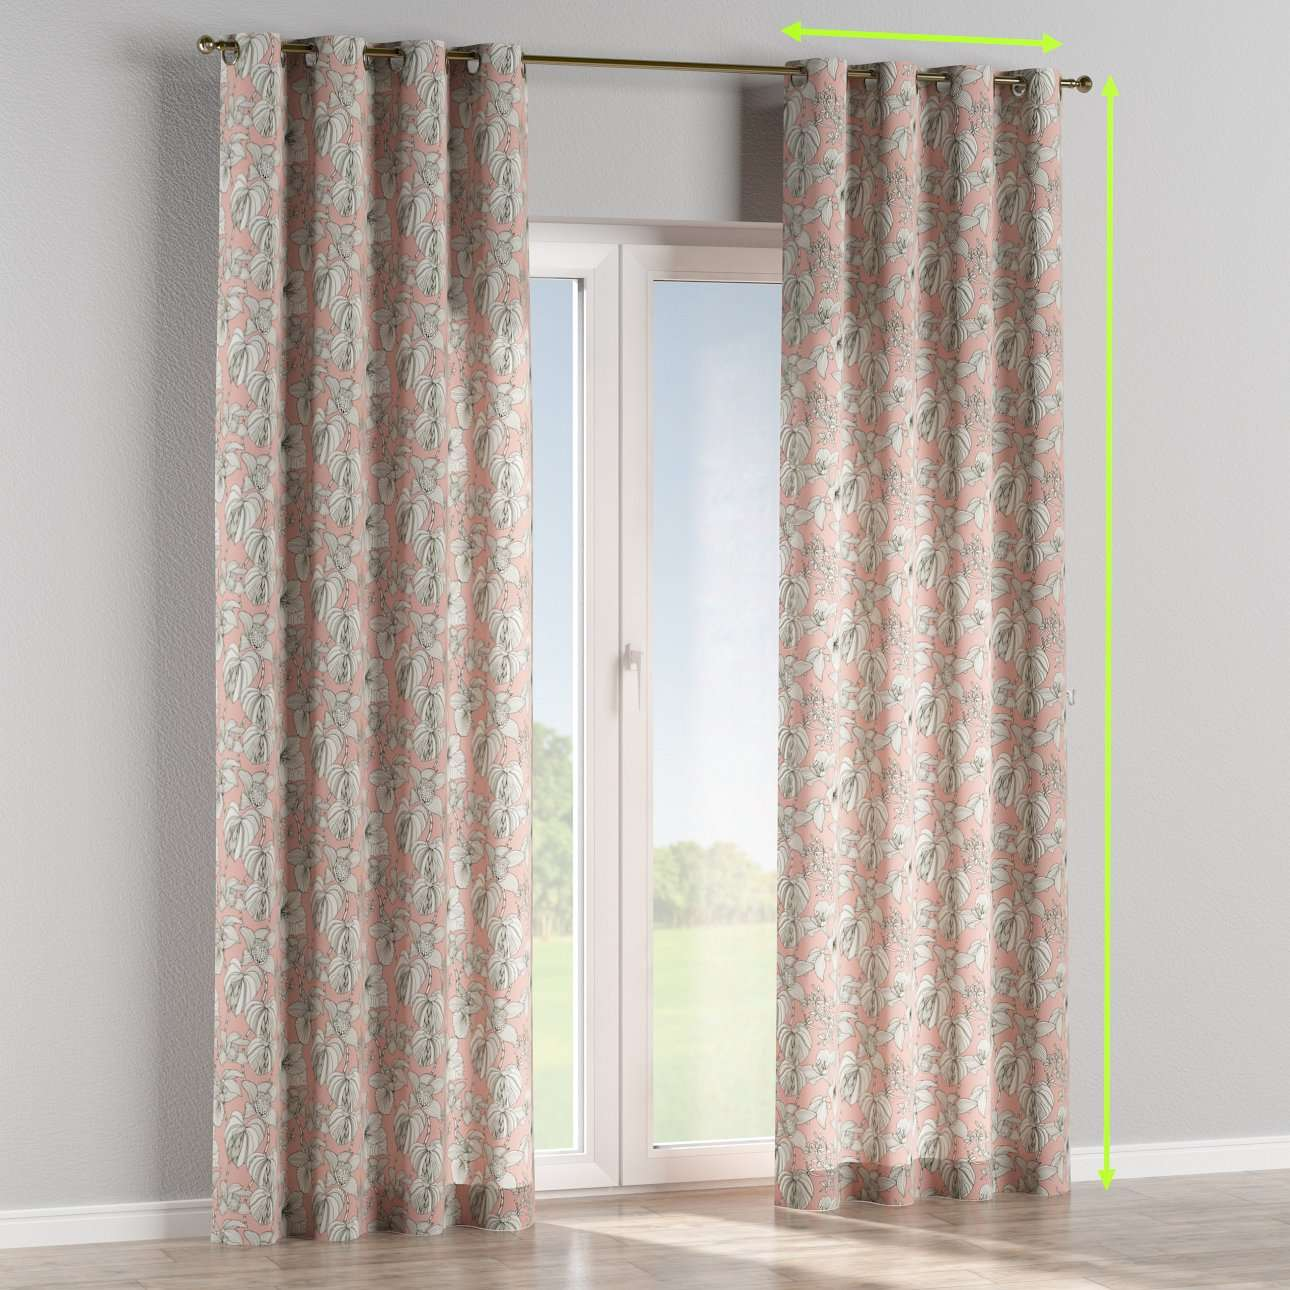 Eyelet lined curtains in collection Brooklyn, fabric: 137-74